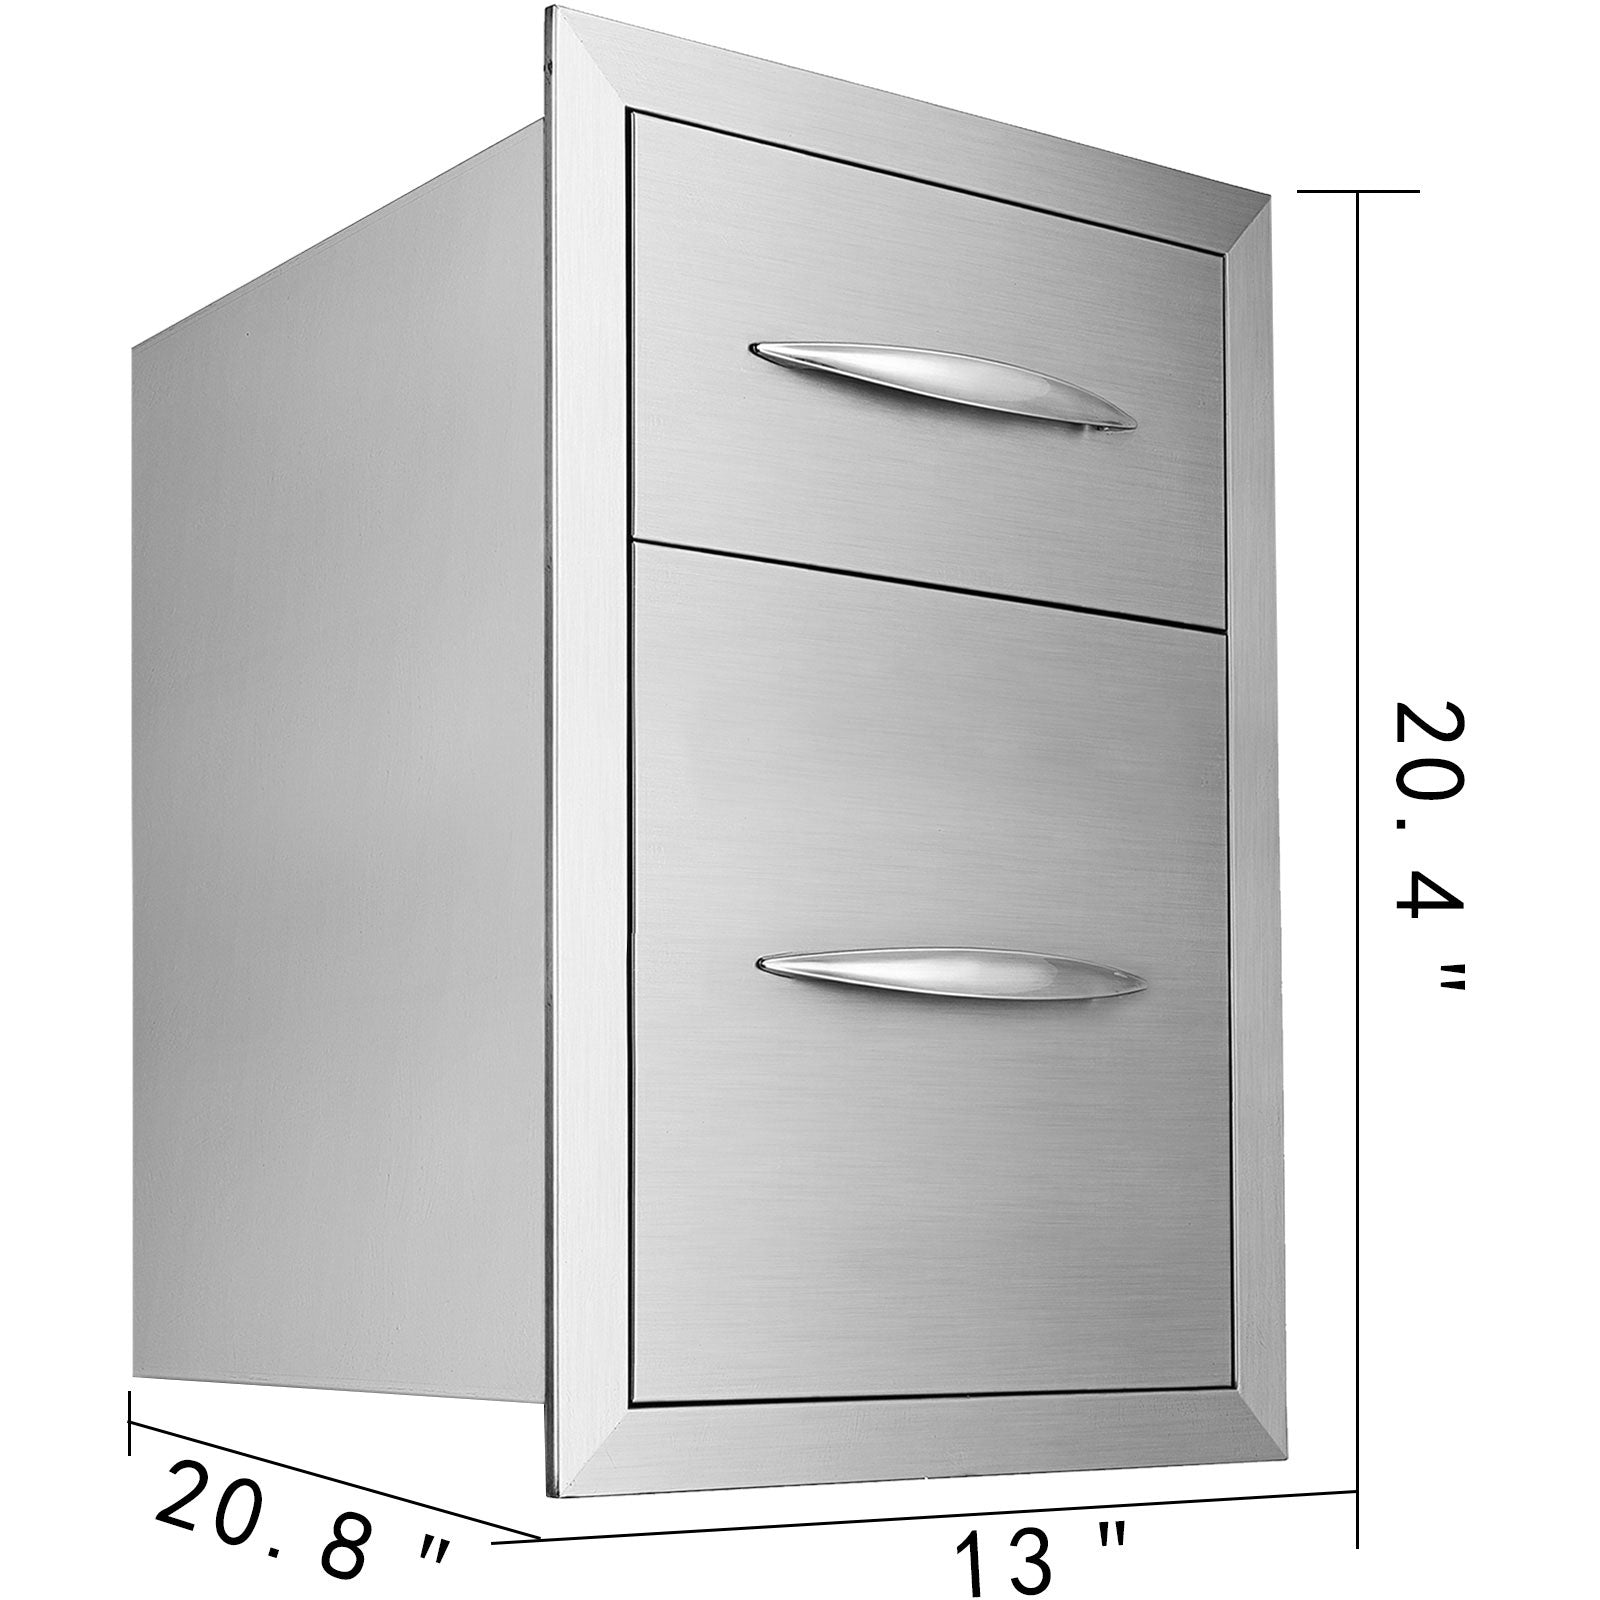 "Bbq Island / Outdoor Kitchen Drawer 13x20.4"" Stainless Steel Narrow Trash Drawer"